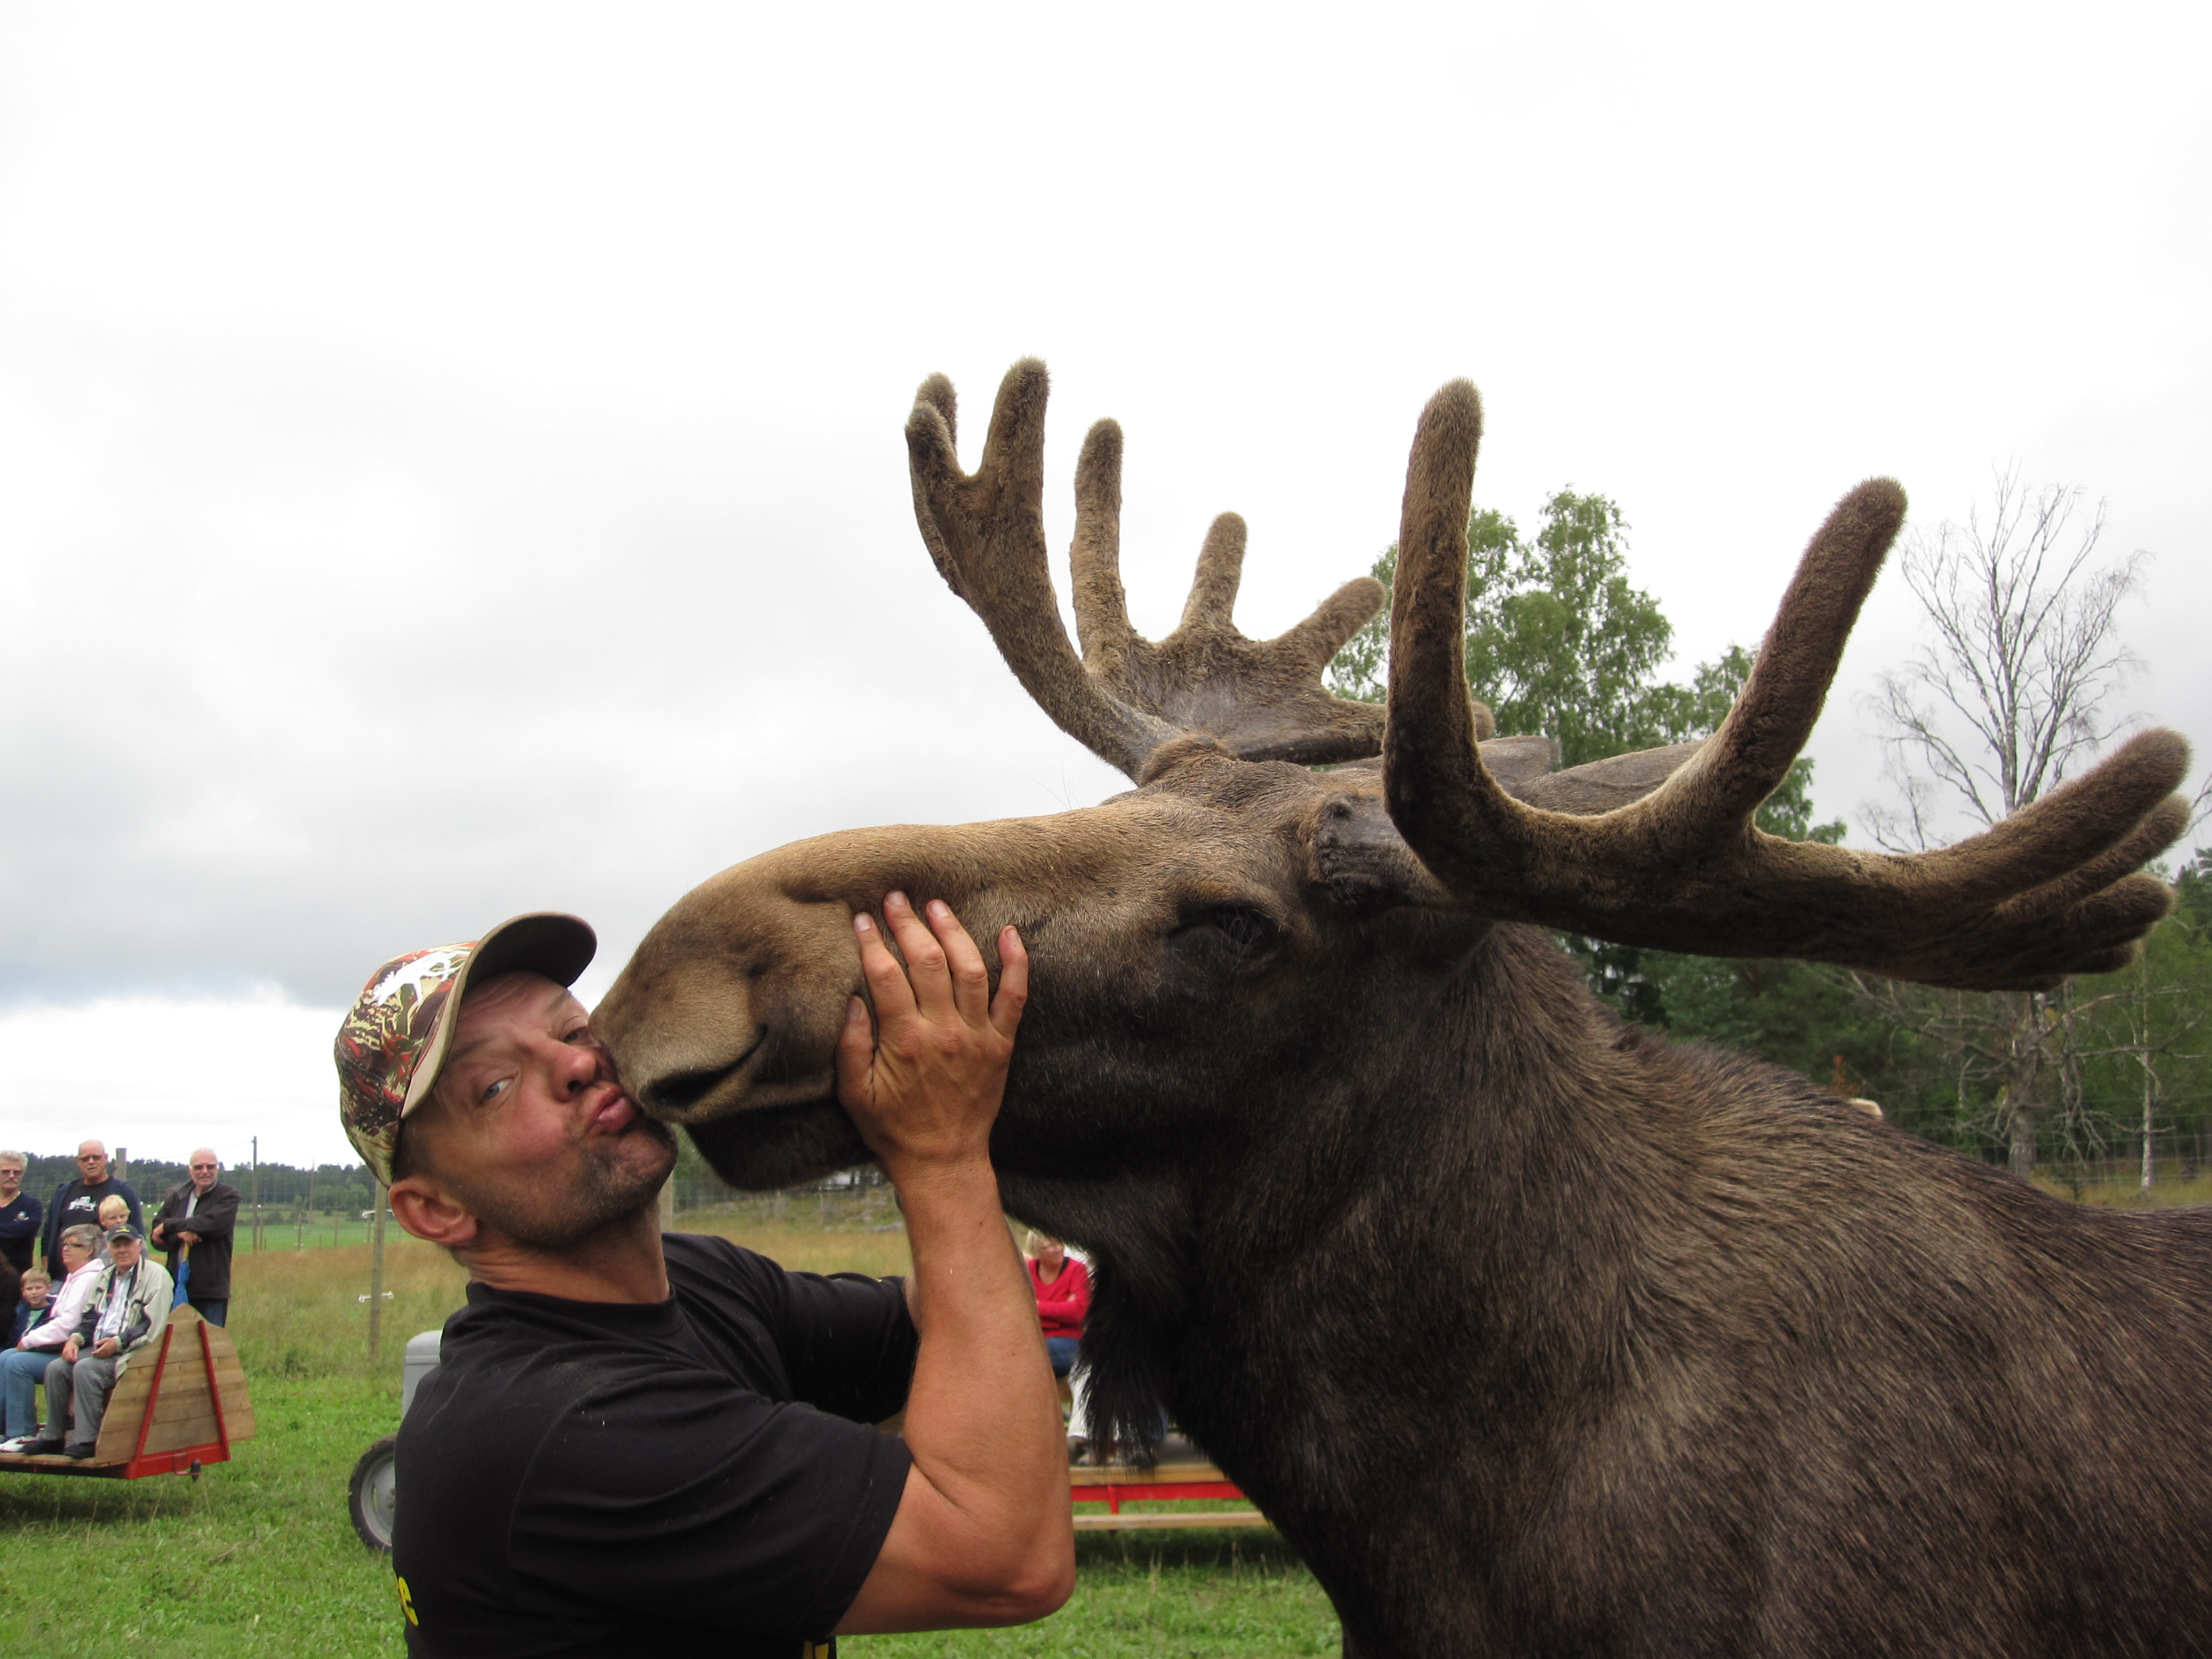 A man is kissing a moose with big antlers